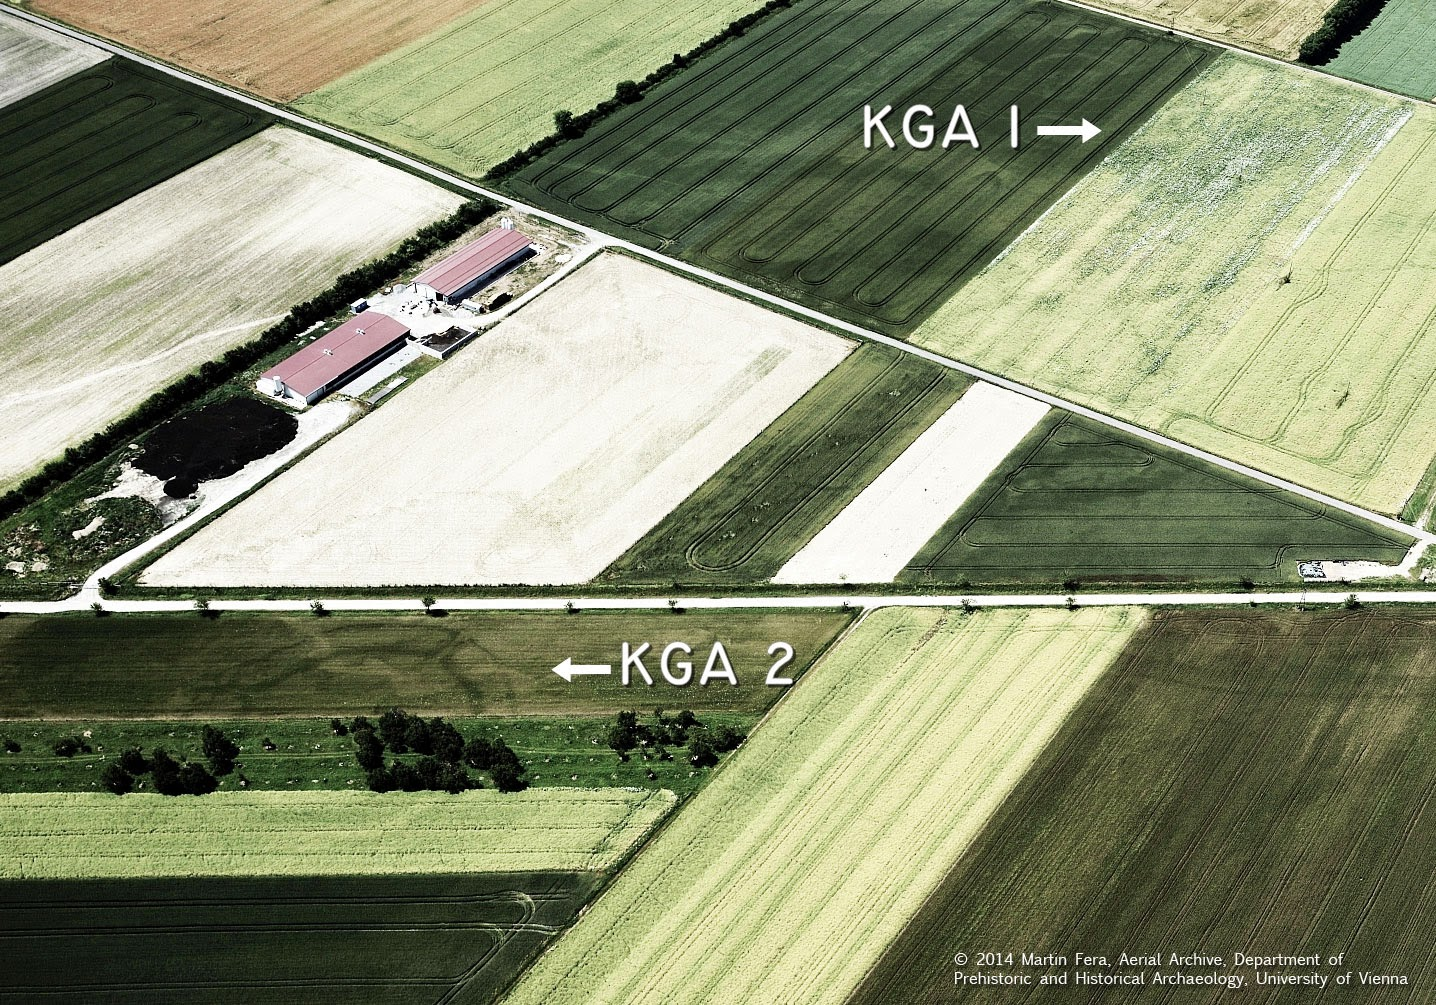 7,000 year old circular earthworks found in Austria